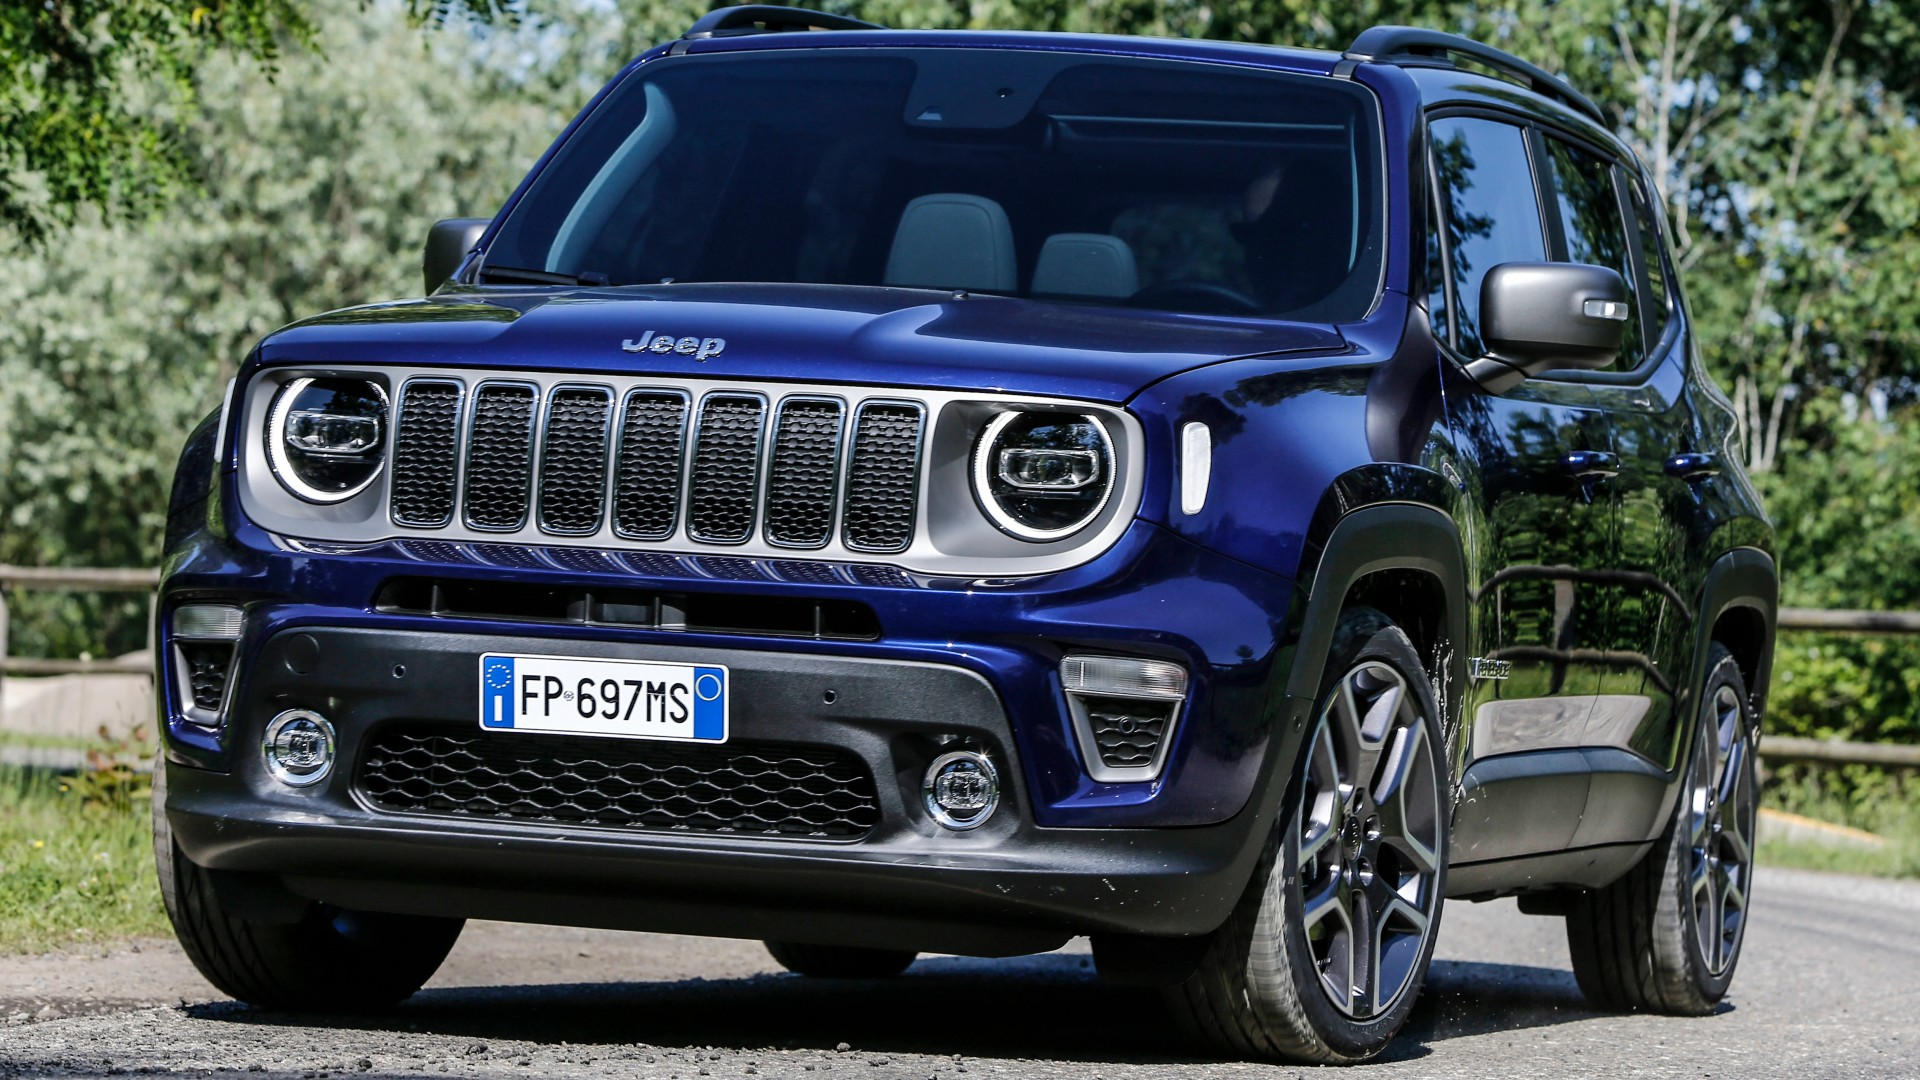 Wallpaper Jeep Renegade, SUV, 2019 Cars, 5K, Cars & Bikes ...